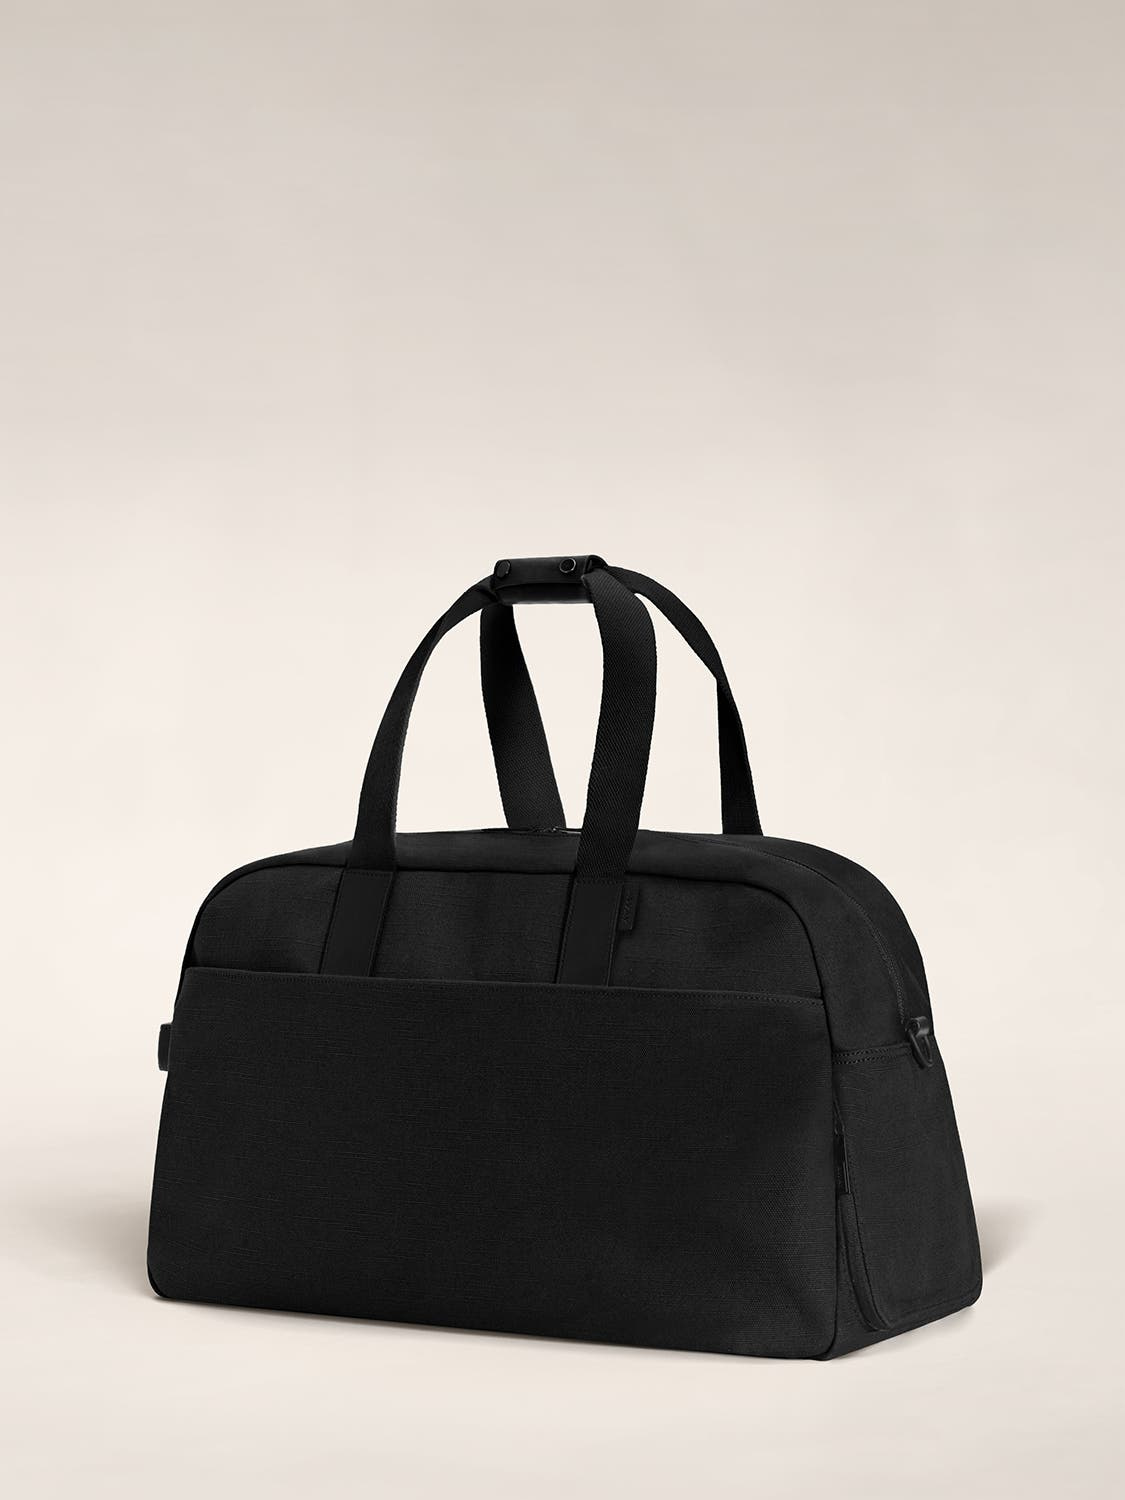 Angled view of a black color canvas duffle bag with black leather trim.